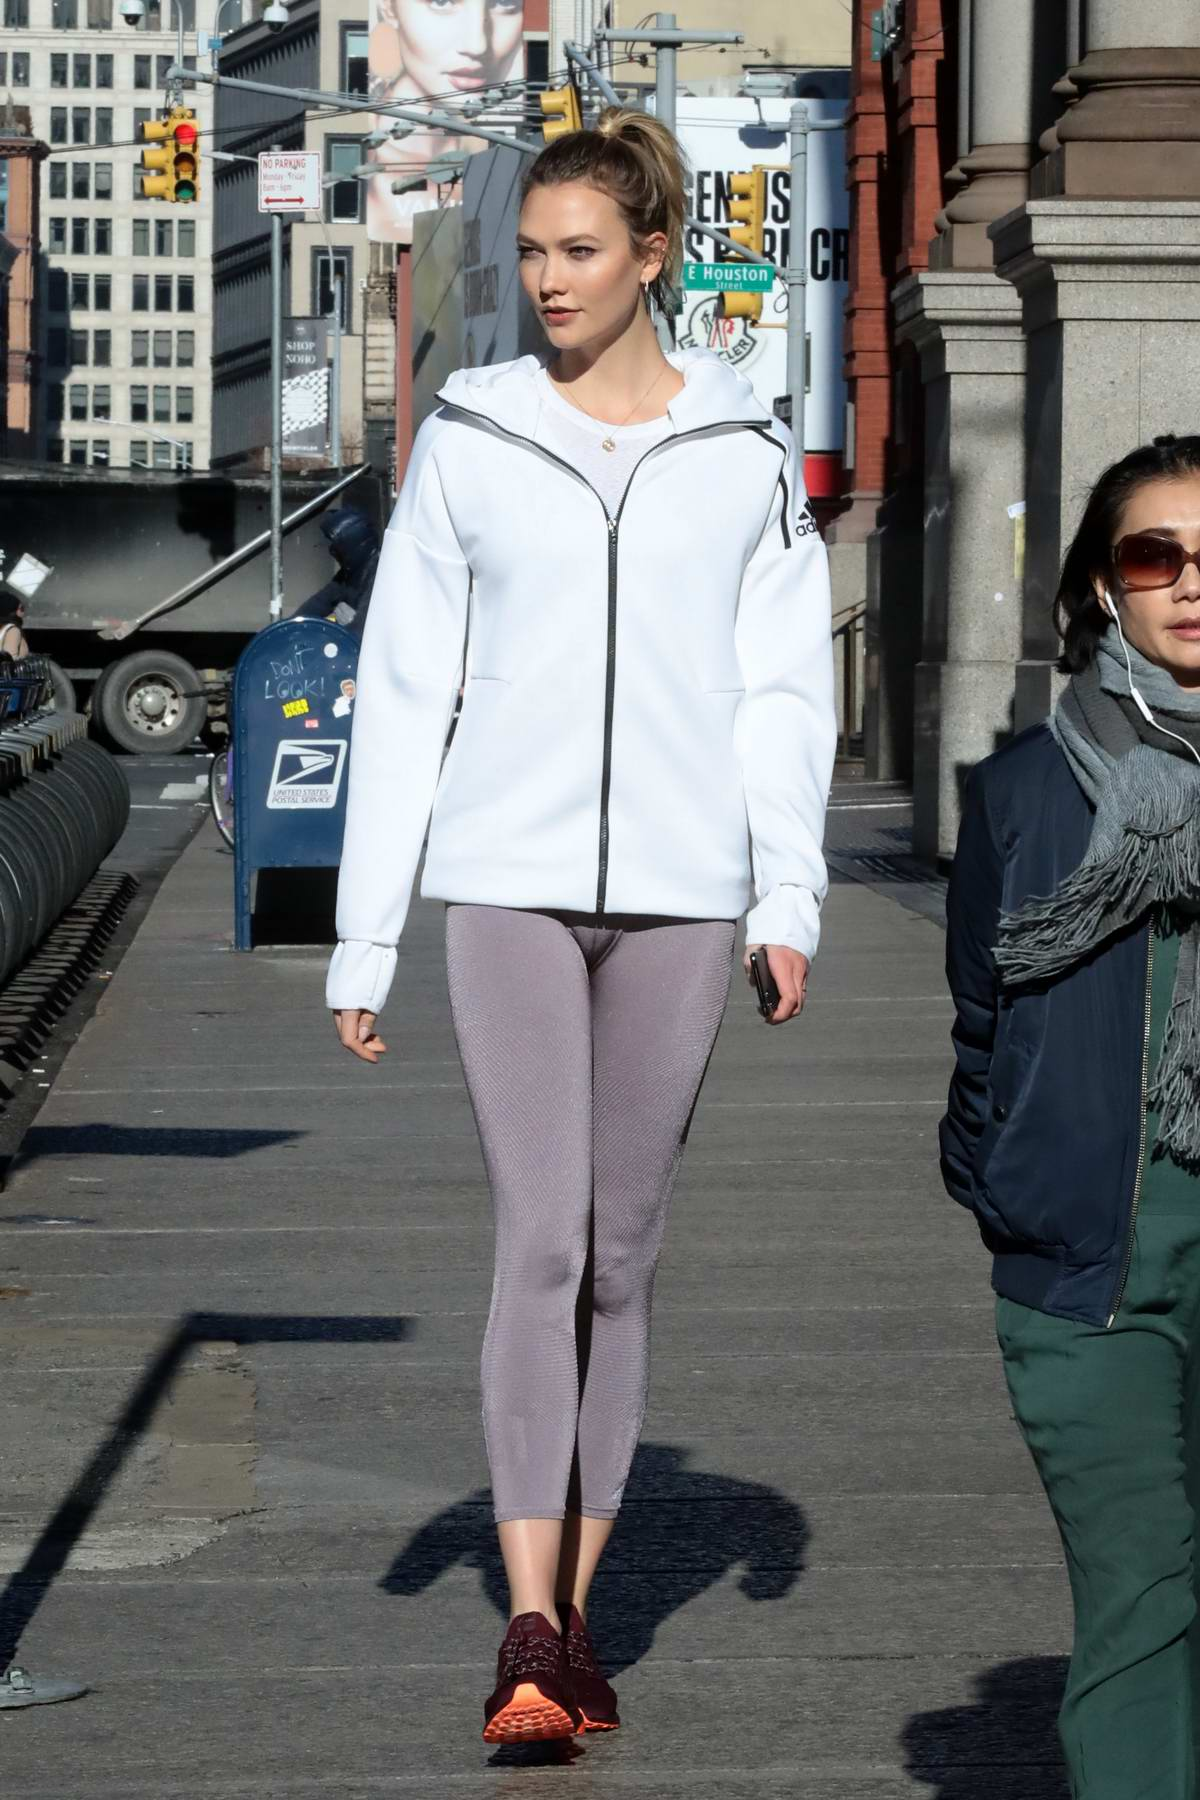 Karlie Kloss shows off her amazing figure in an Adidas hoodie and leggings as she steps out in New York City